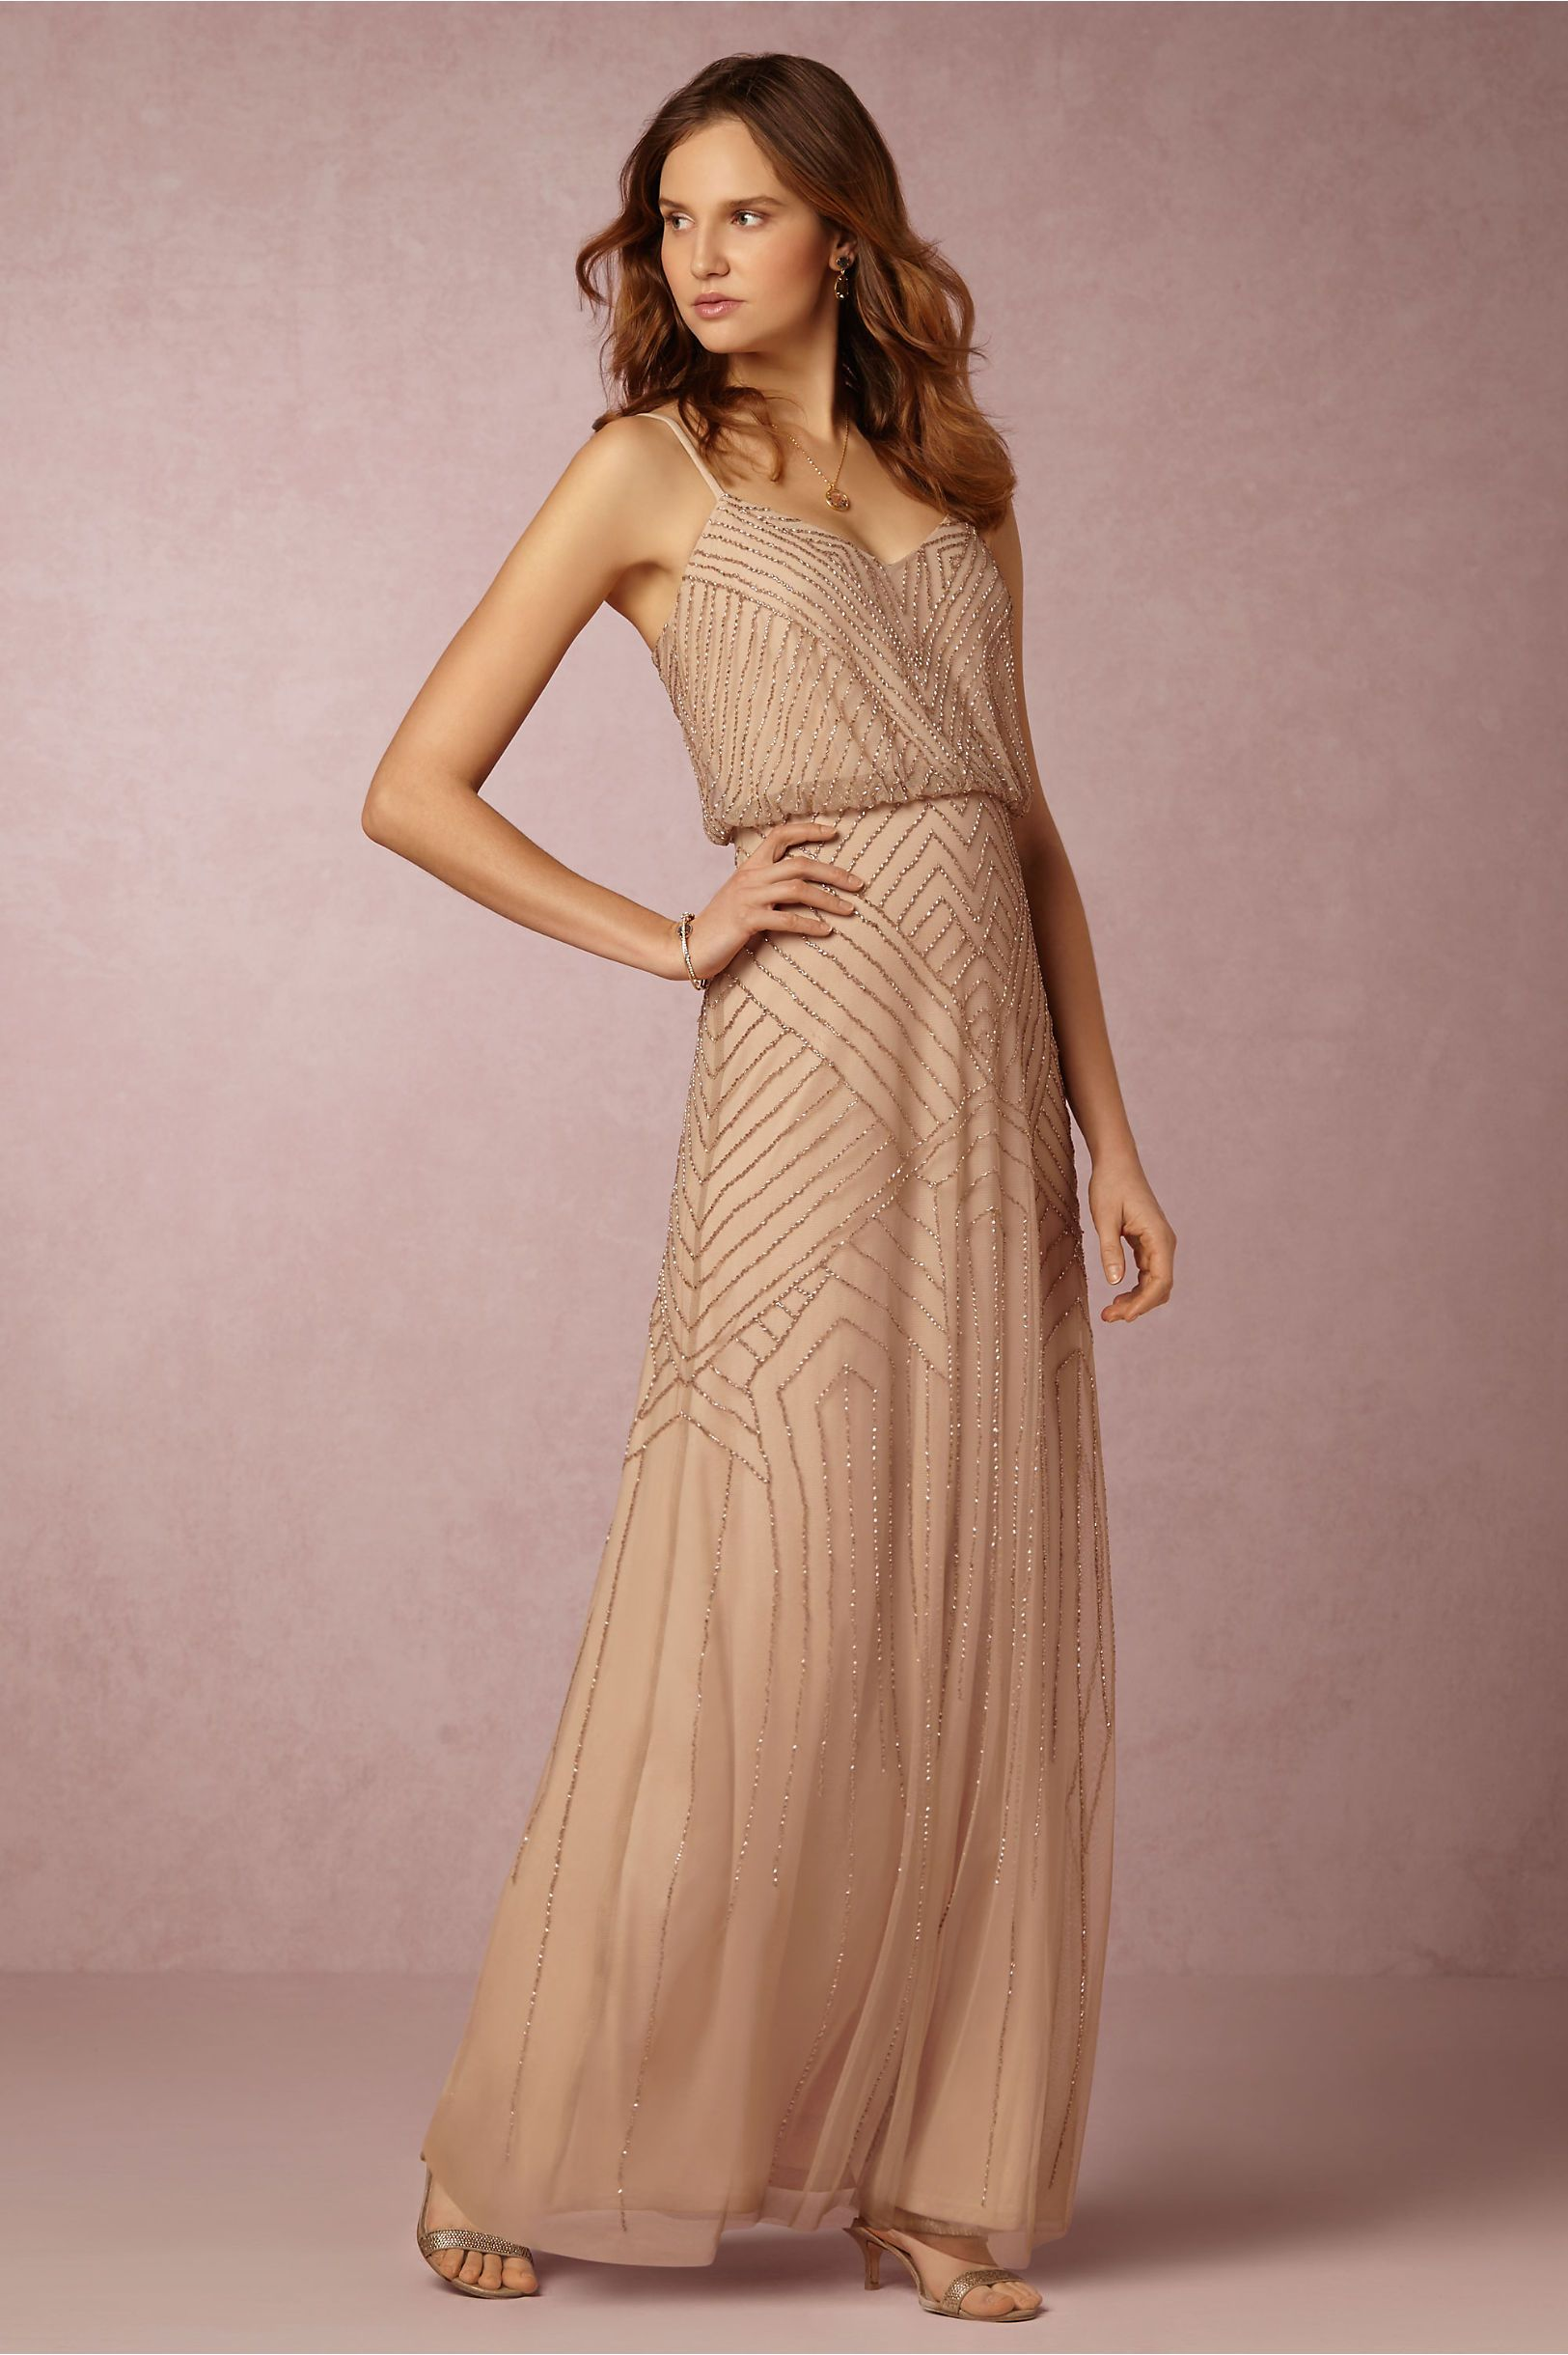 Color options rose gold and serentity blue bhldn sophia dress sophia dress in bridesmaids maid of honor dresses at bhldn ombrellifo Image collections